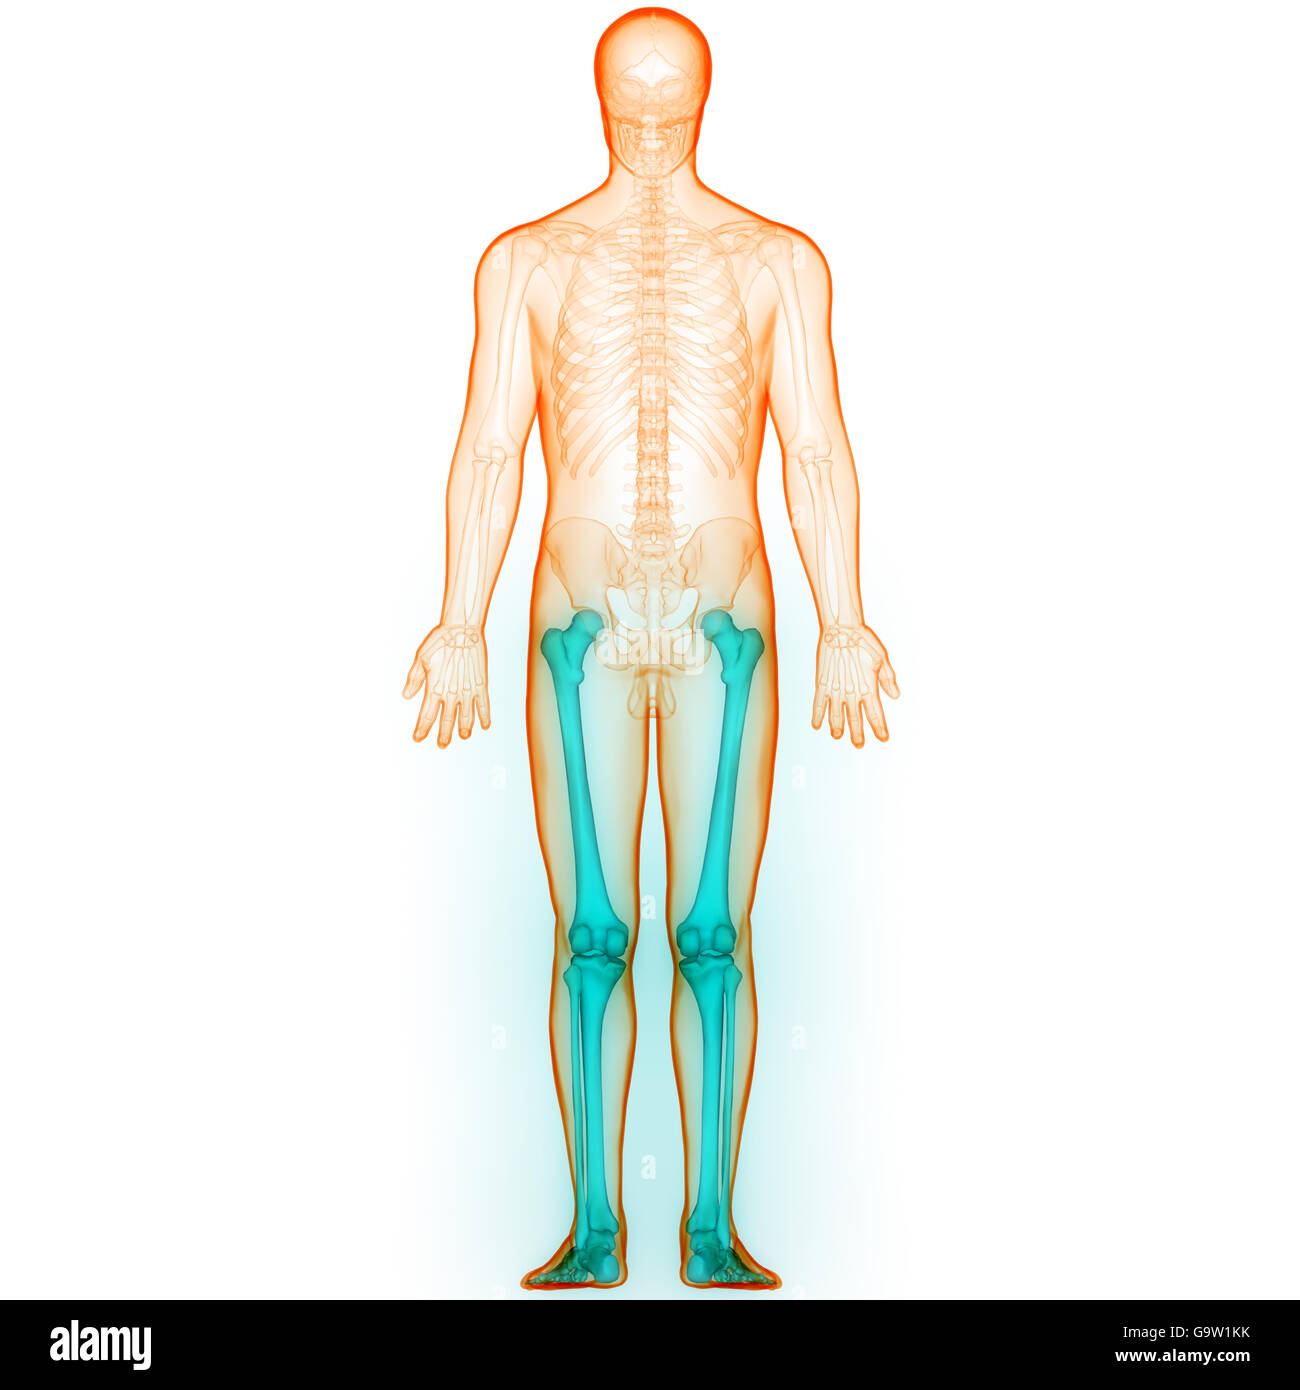 hight resolution of human body bone joint pains leg joints stock image